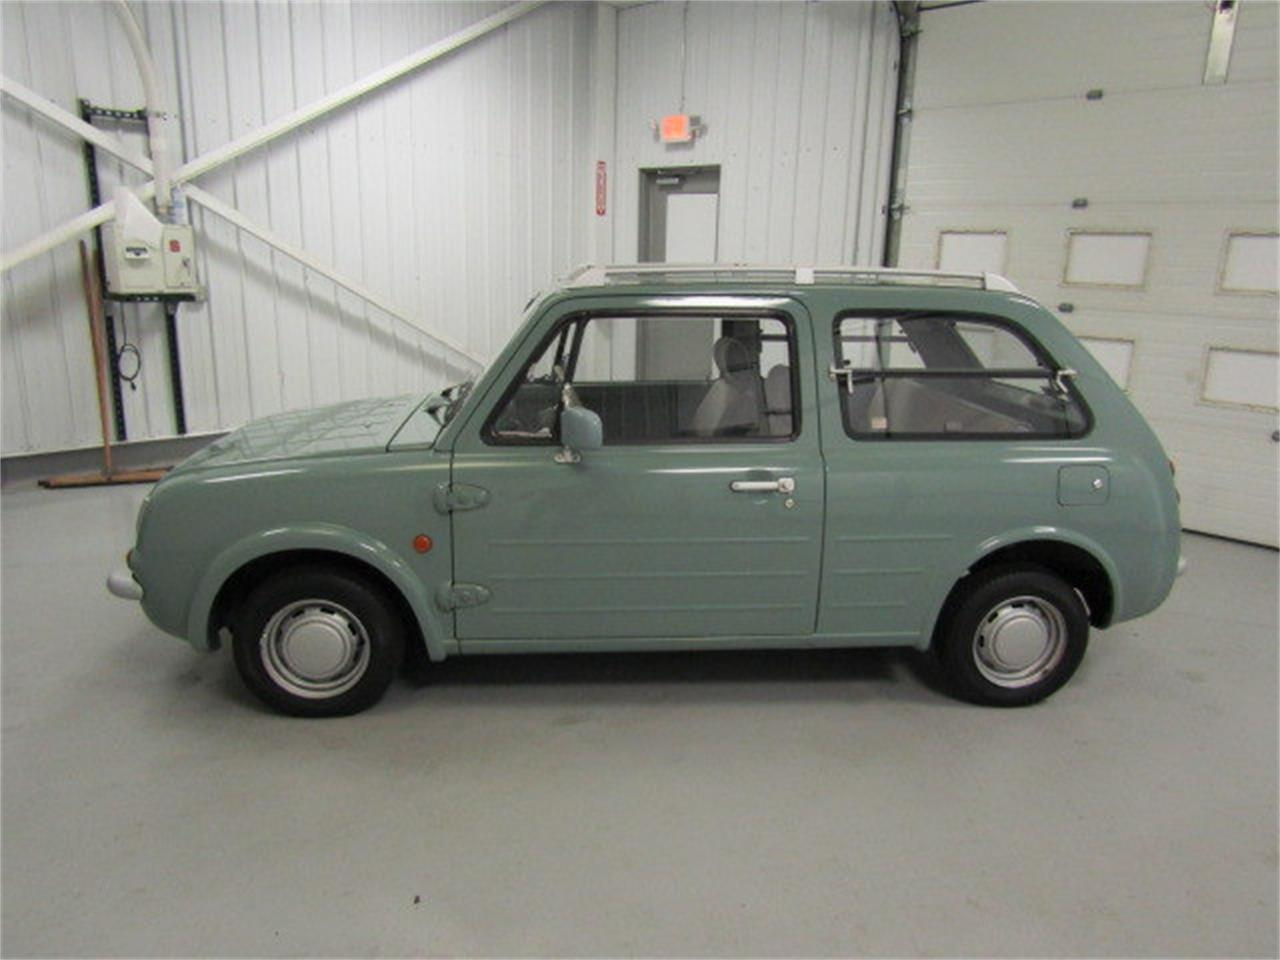 Large Picture of 1990 Nissan Pao - $9,967.00 Offered by Duncan Imports & Classic Cars - LI63